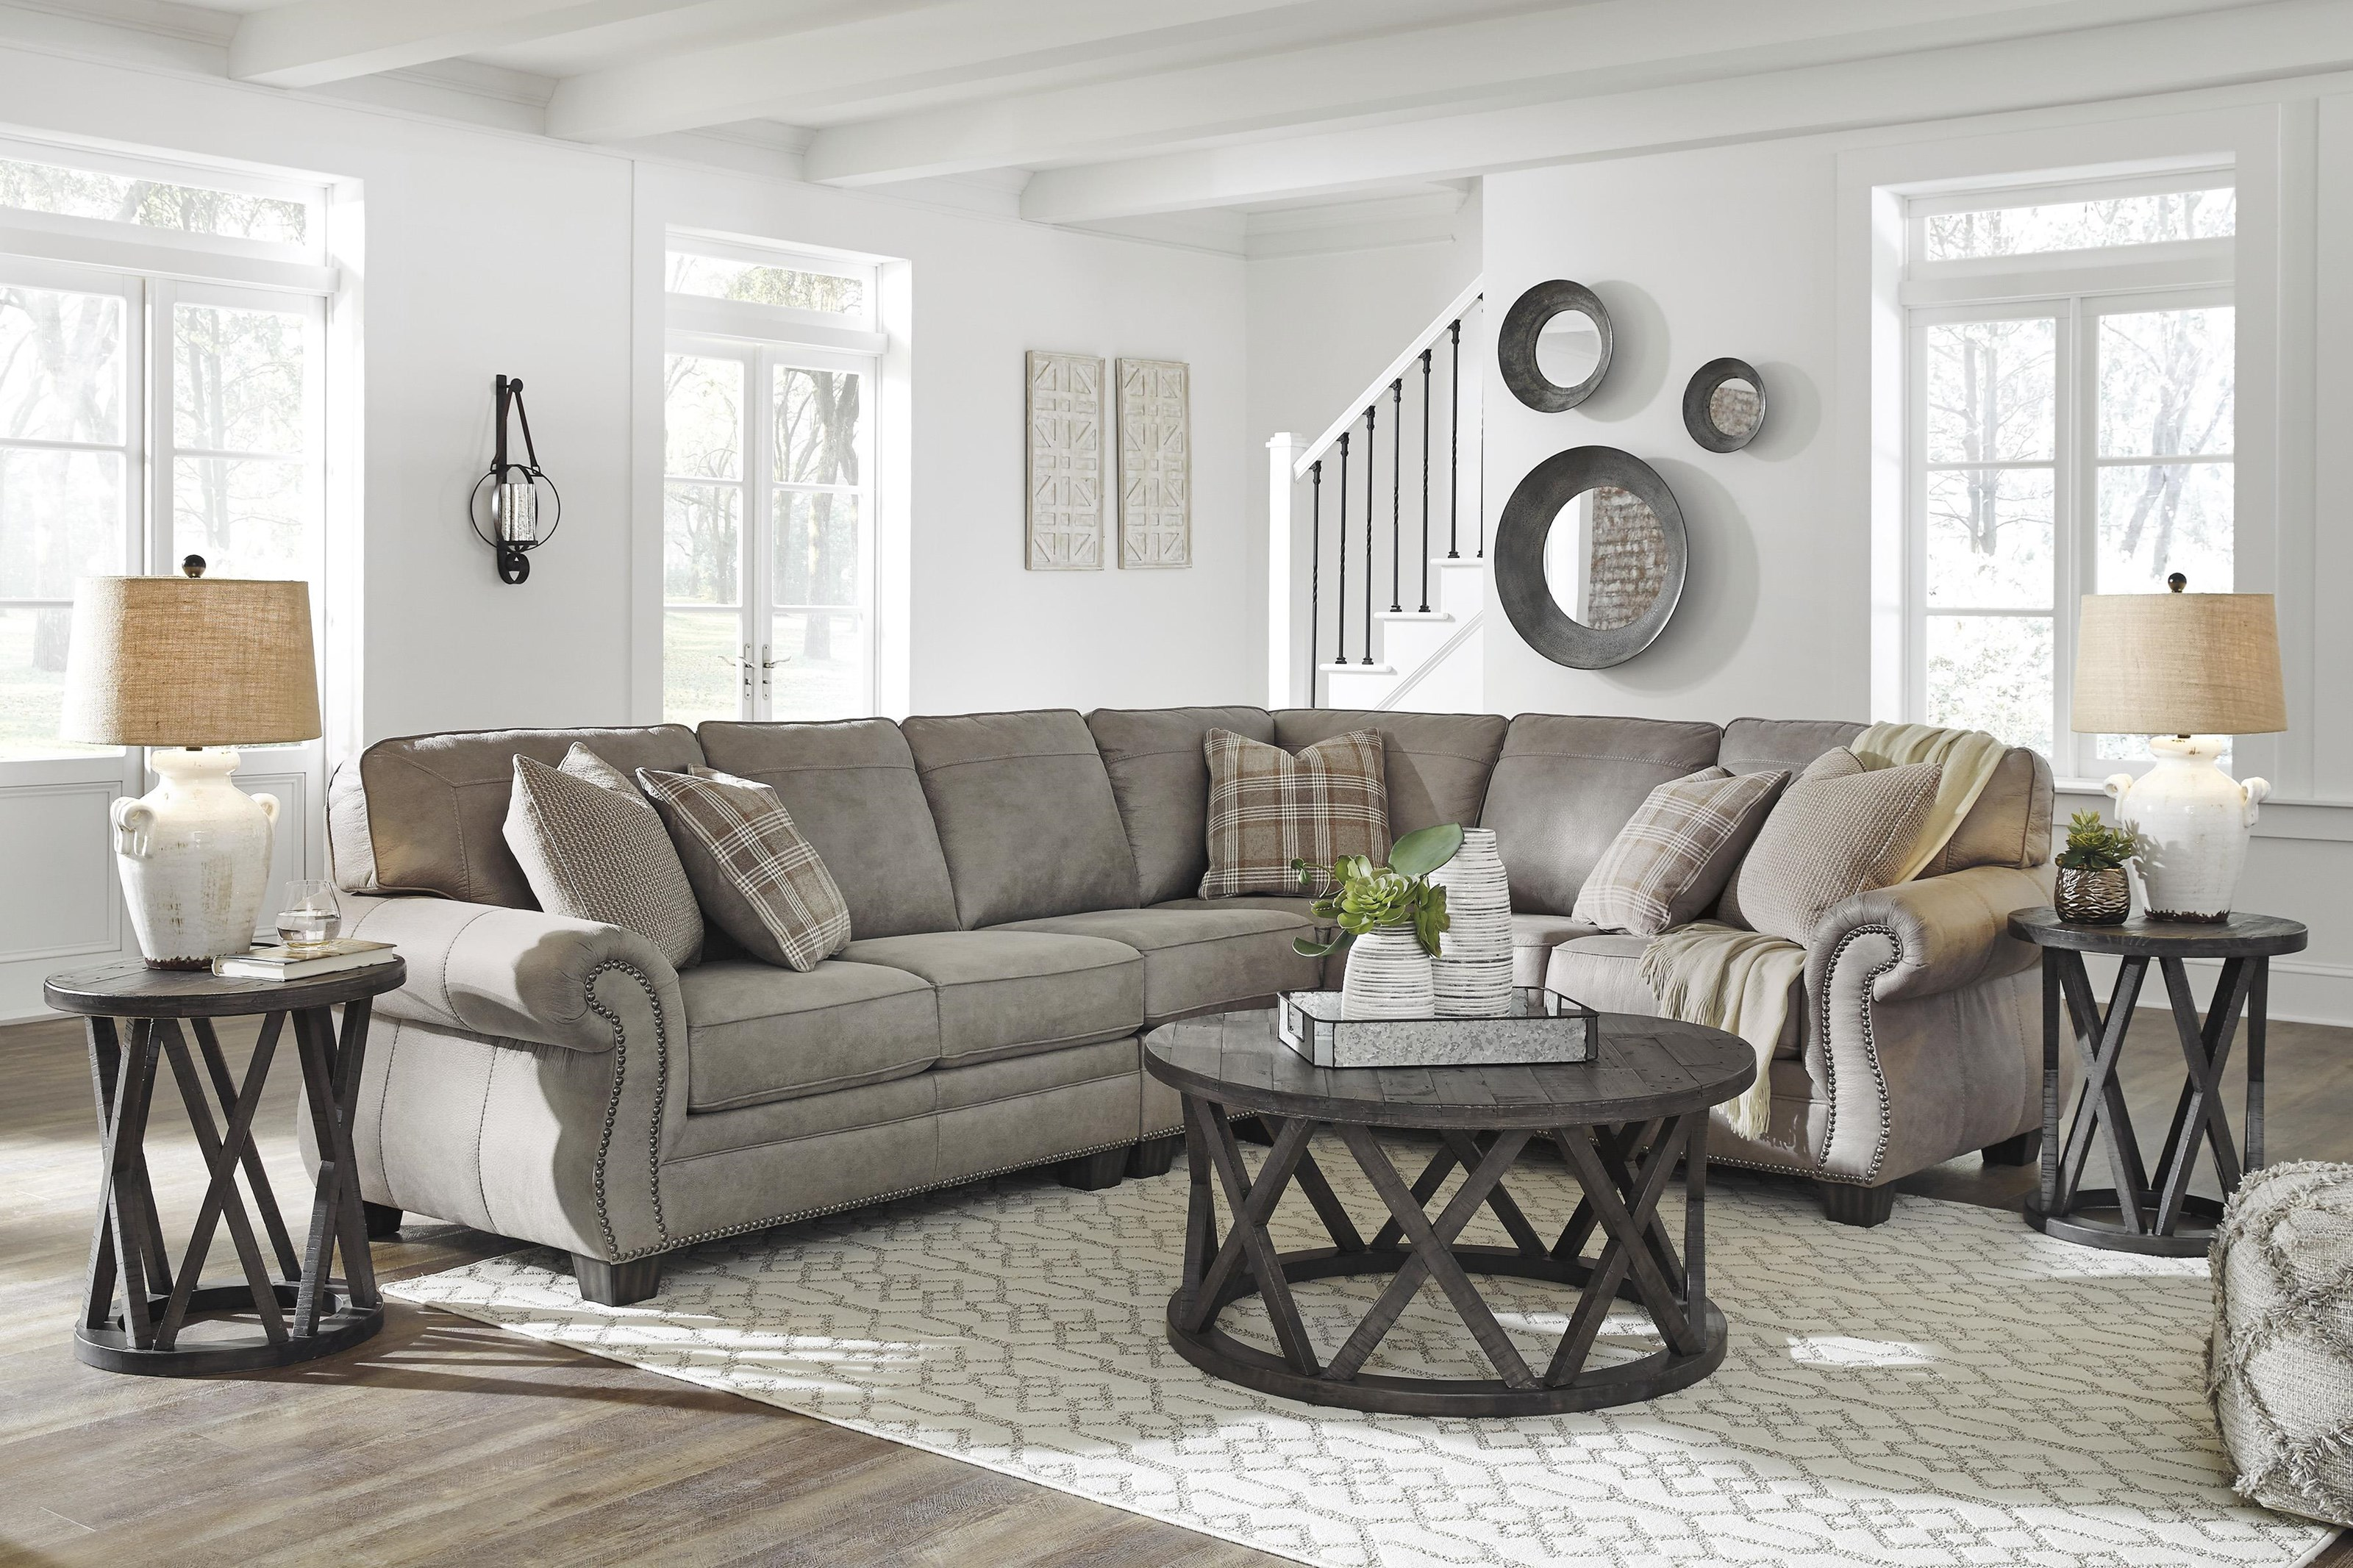 Olsberg 3 Piece Sectional Sofa and nRecliner Set by Signature Design by Ashley at Sam Levitz Outlet